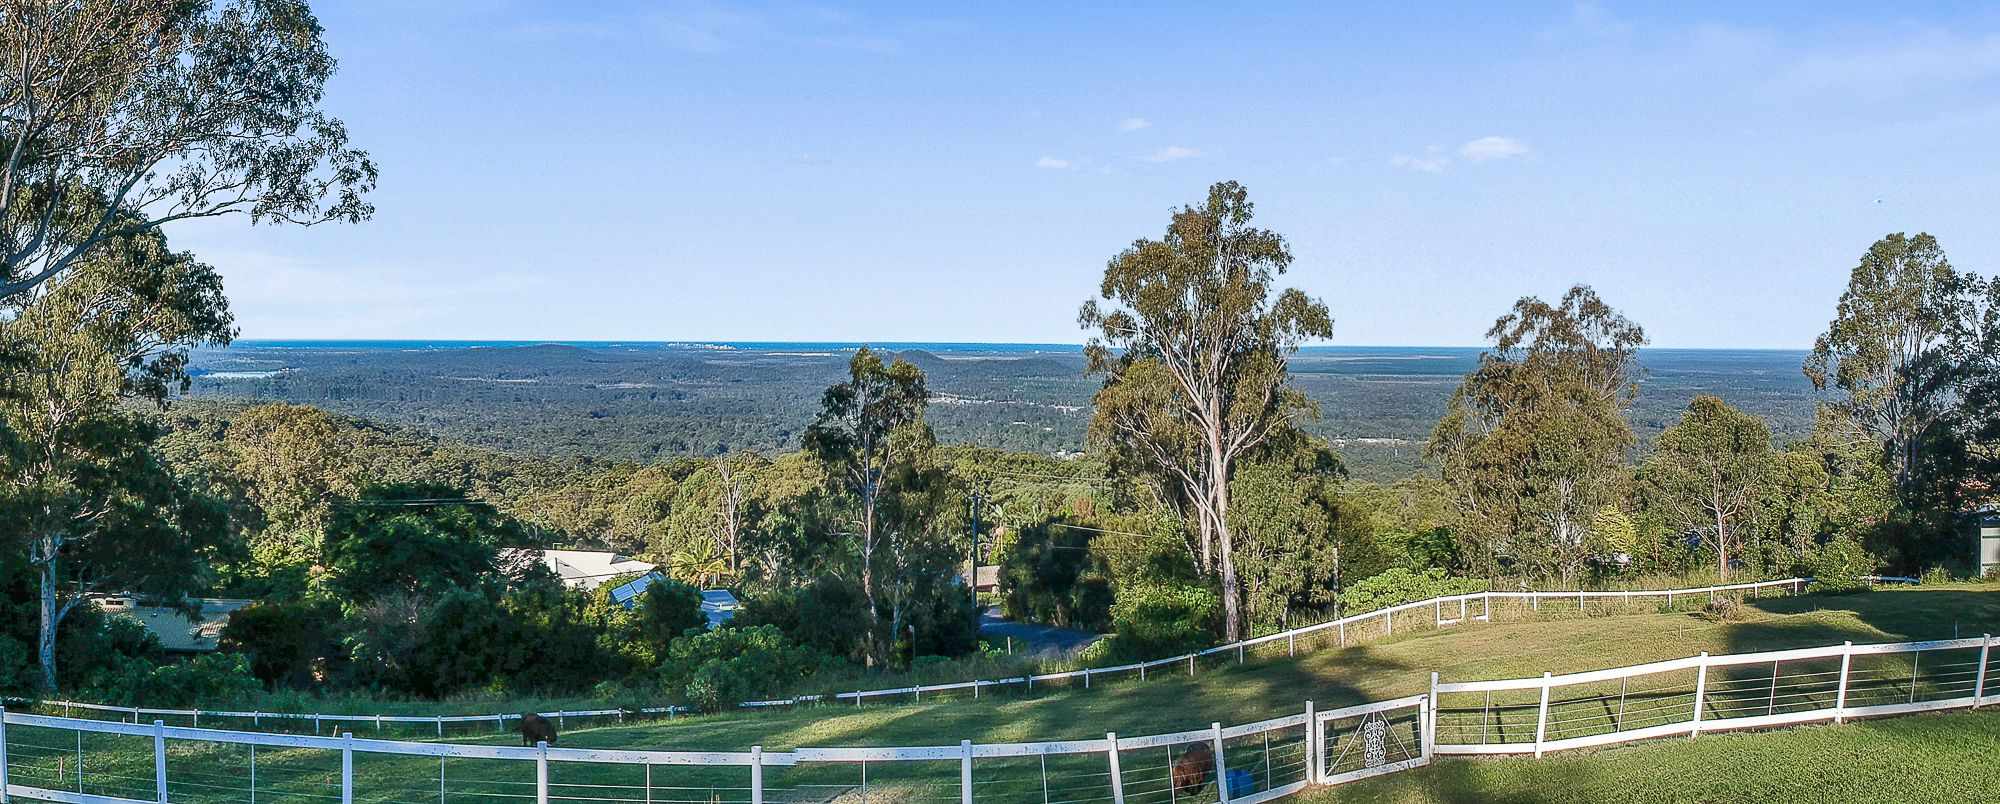 335 Landsborough Maleny Rd